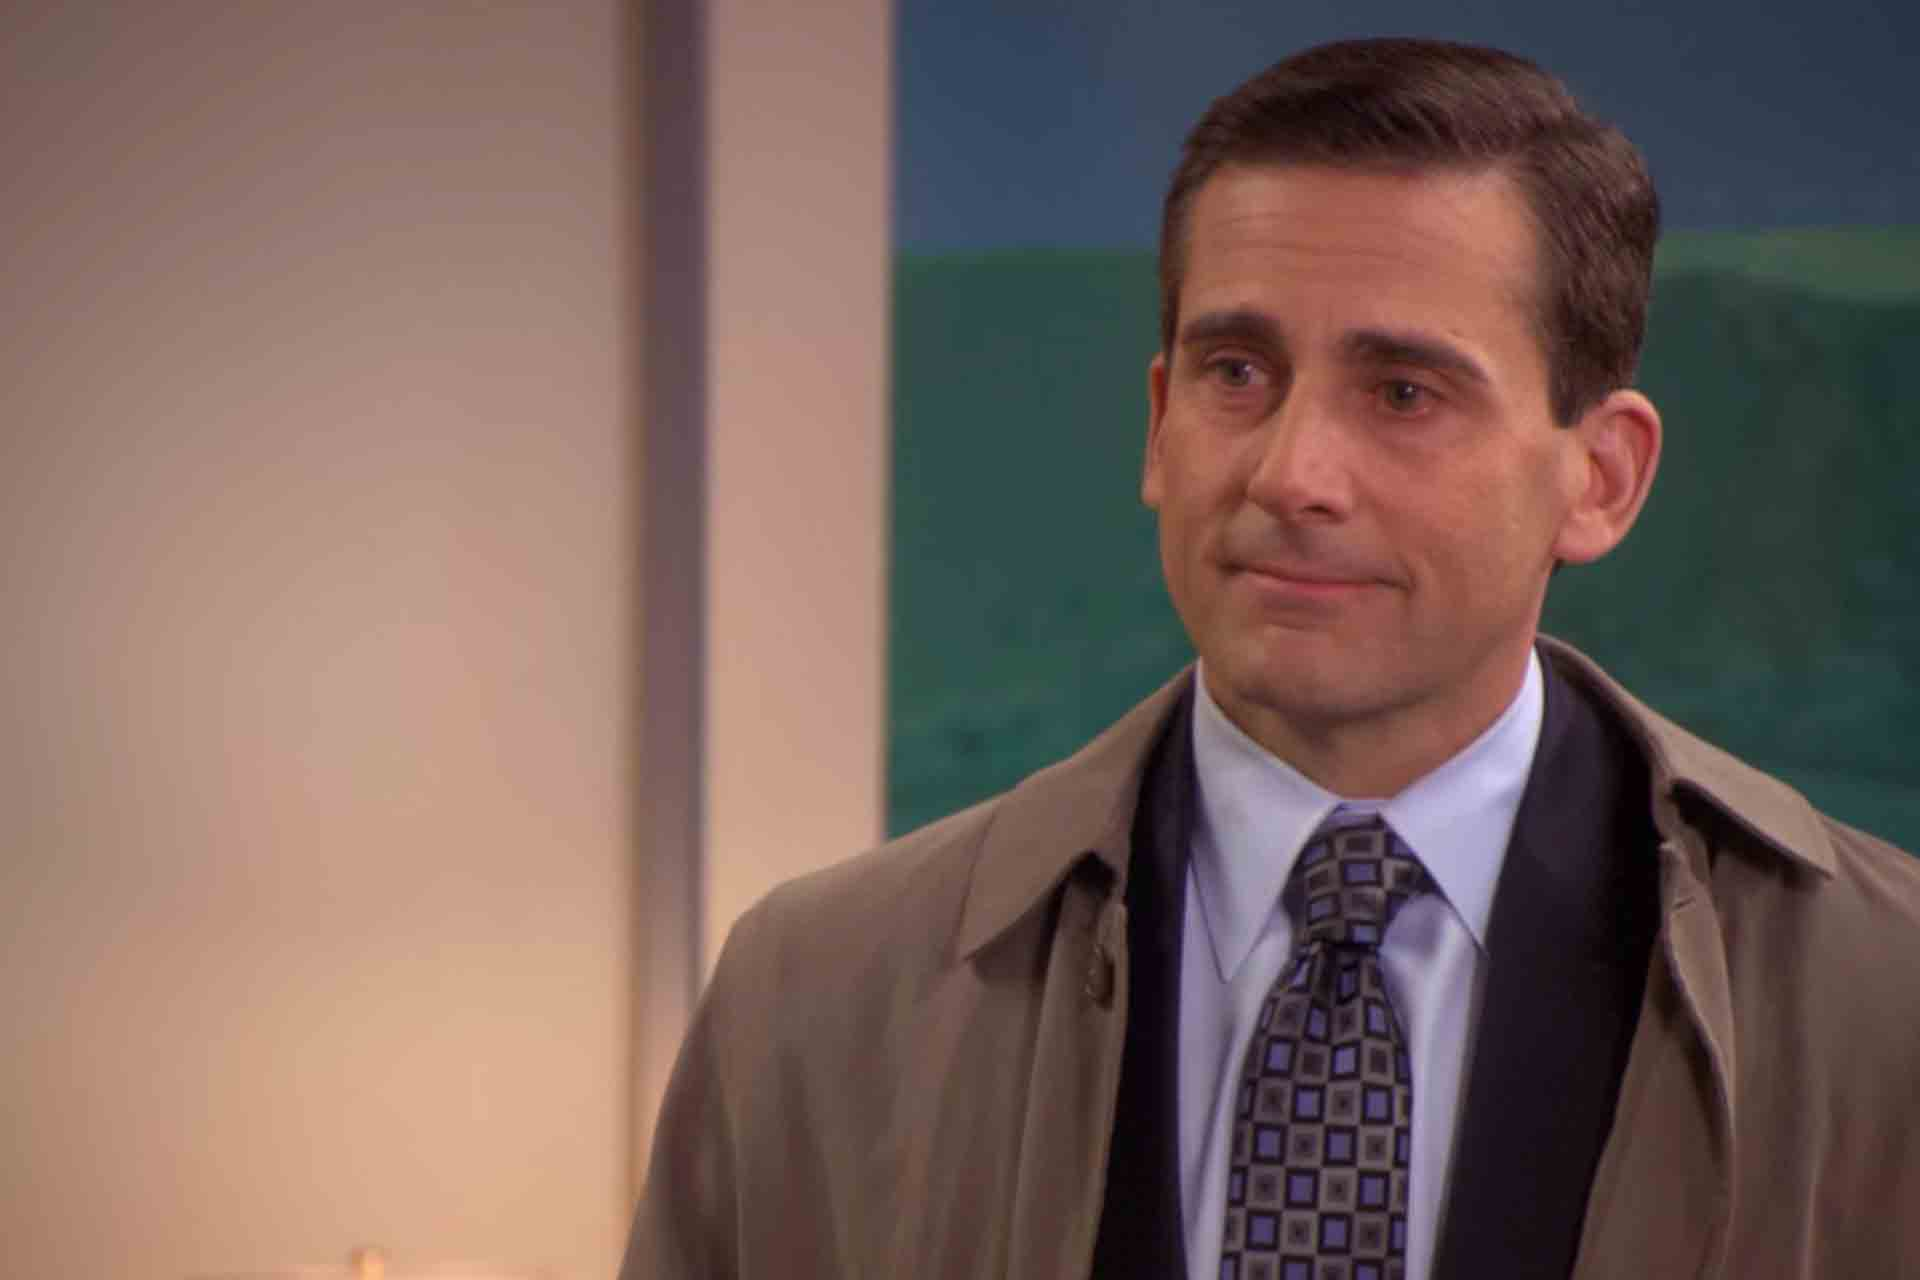 Michael was loved and adored by the time he left The Office in Season 7.